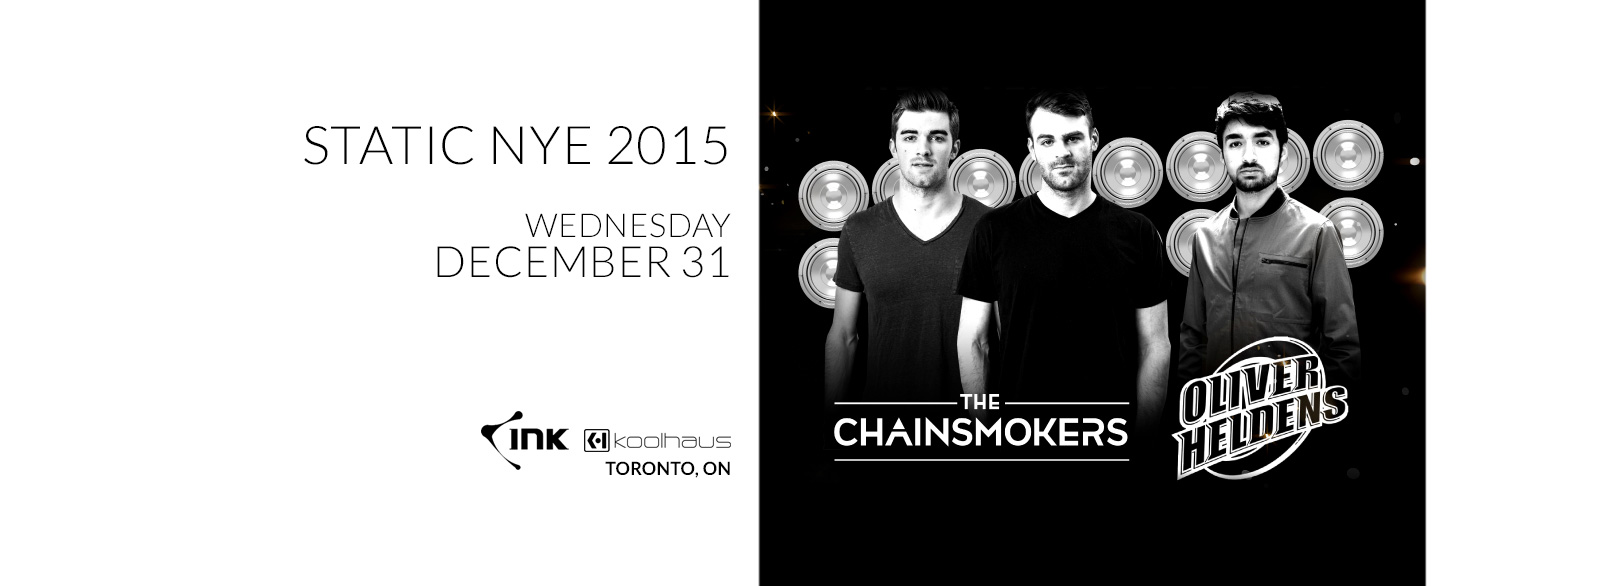 The Chainsmokers & Oliver Heldens @ Kool Haus